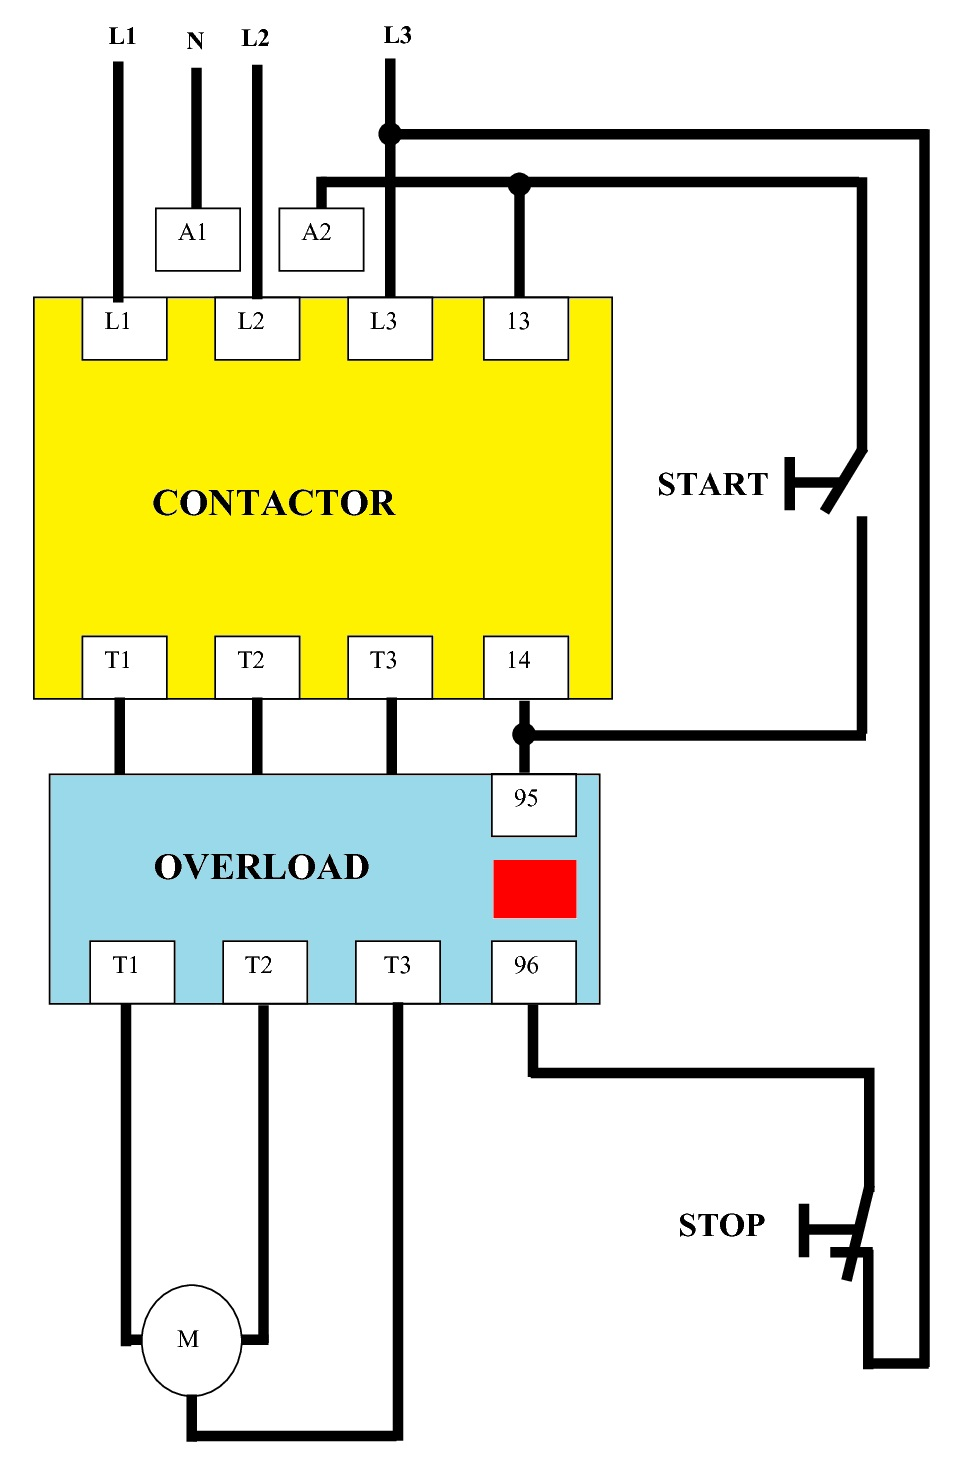 3 phase wiring diagram wires